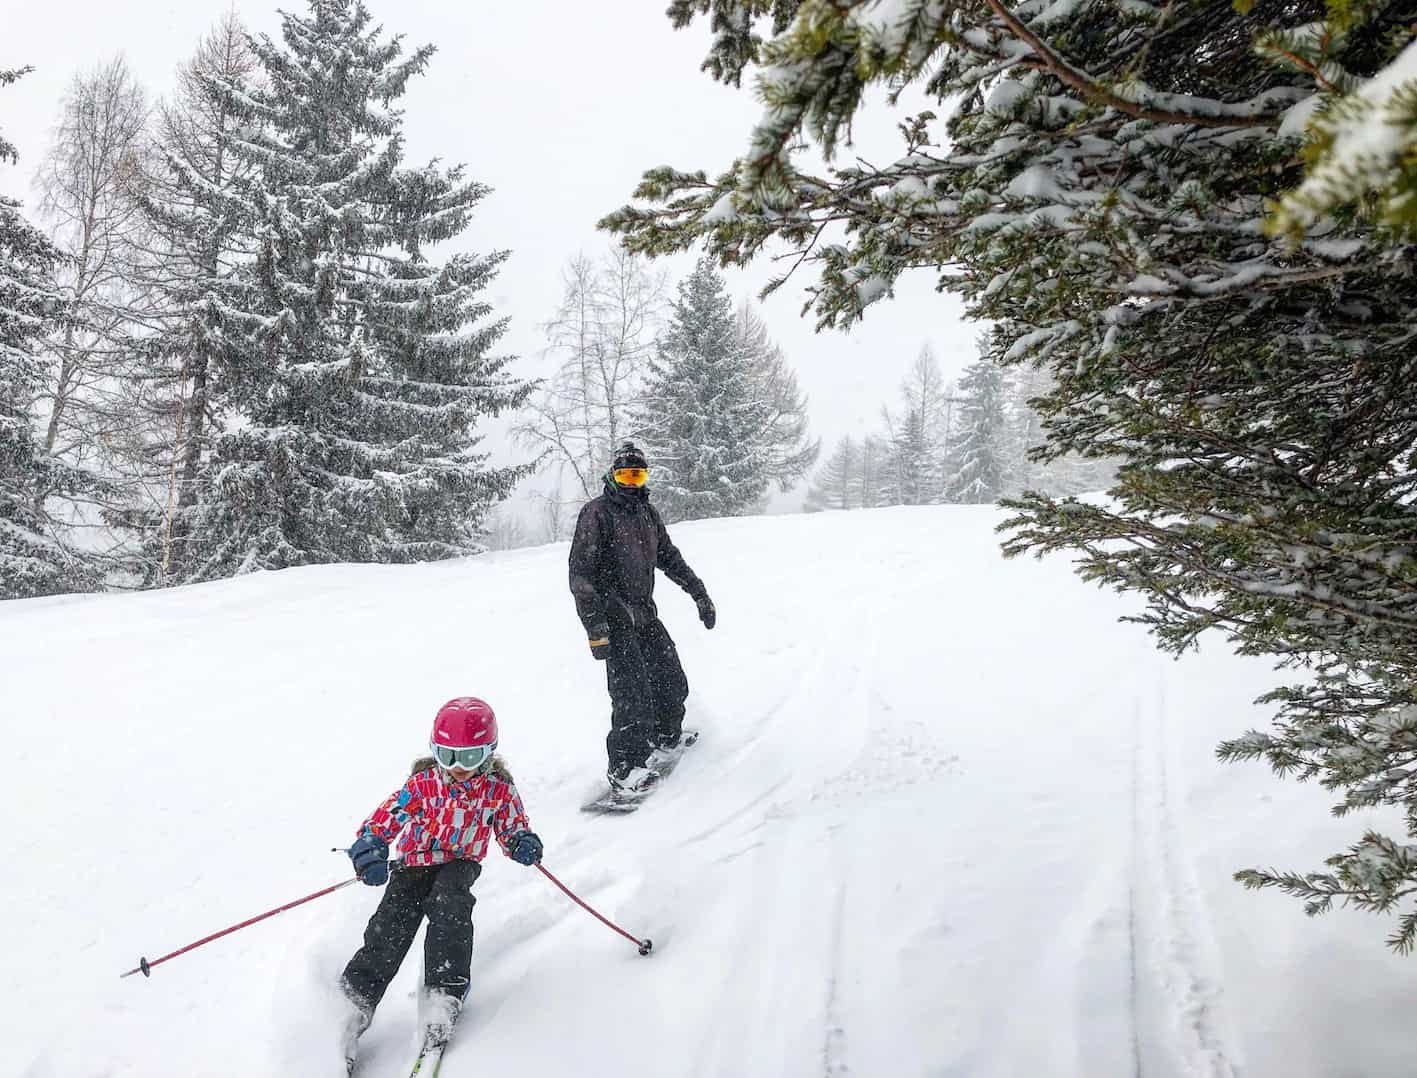 Les Houches review